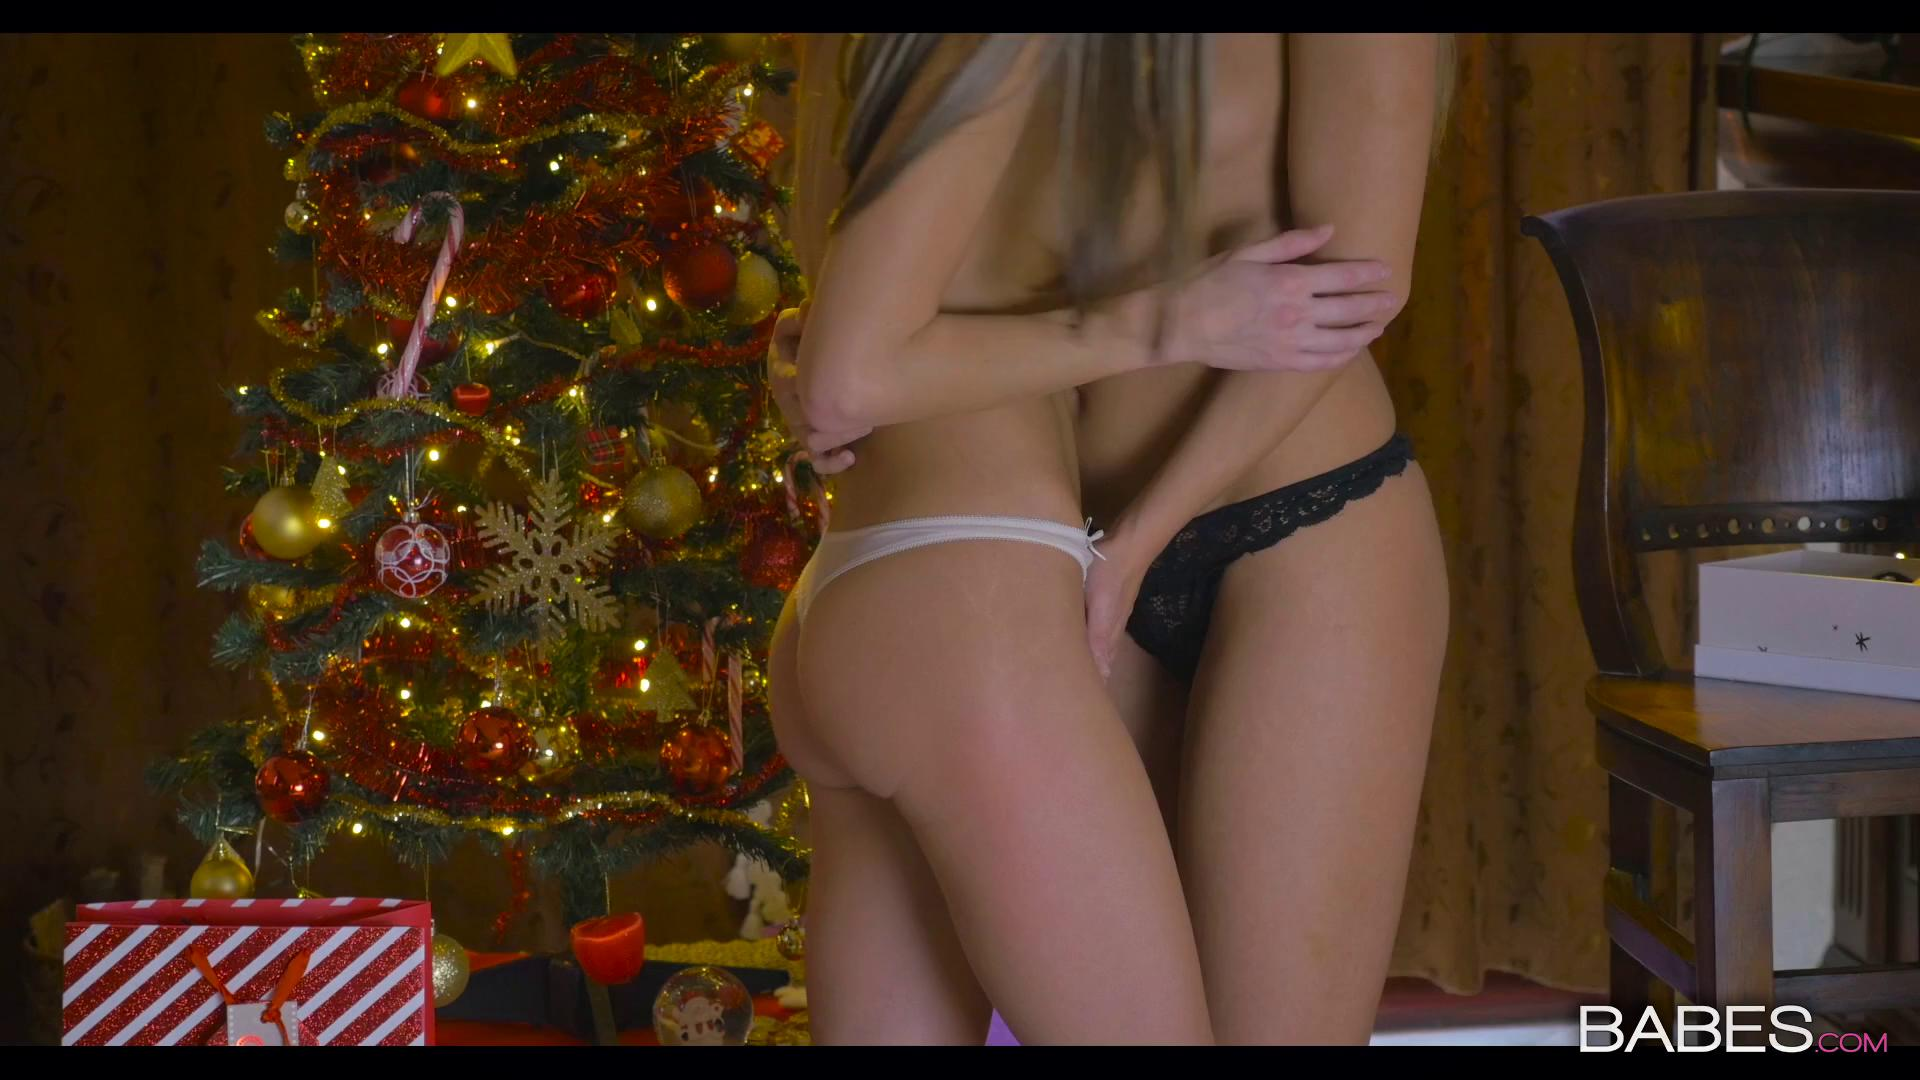 Babes – Blue Angel And Gina Gerson All I Want For Christmas Is You